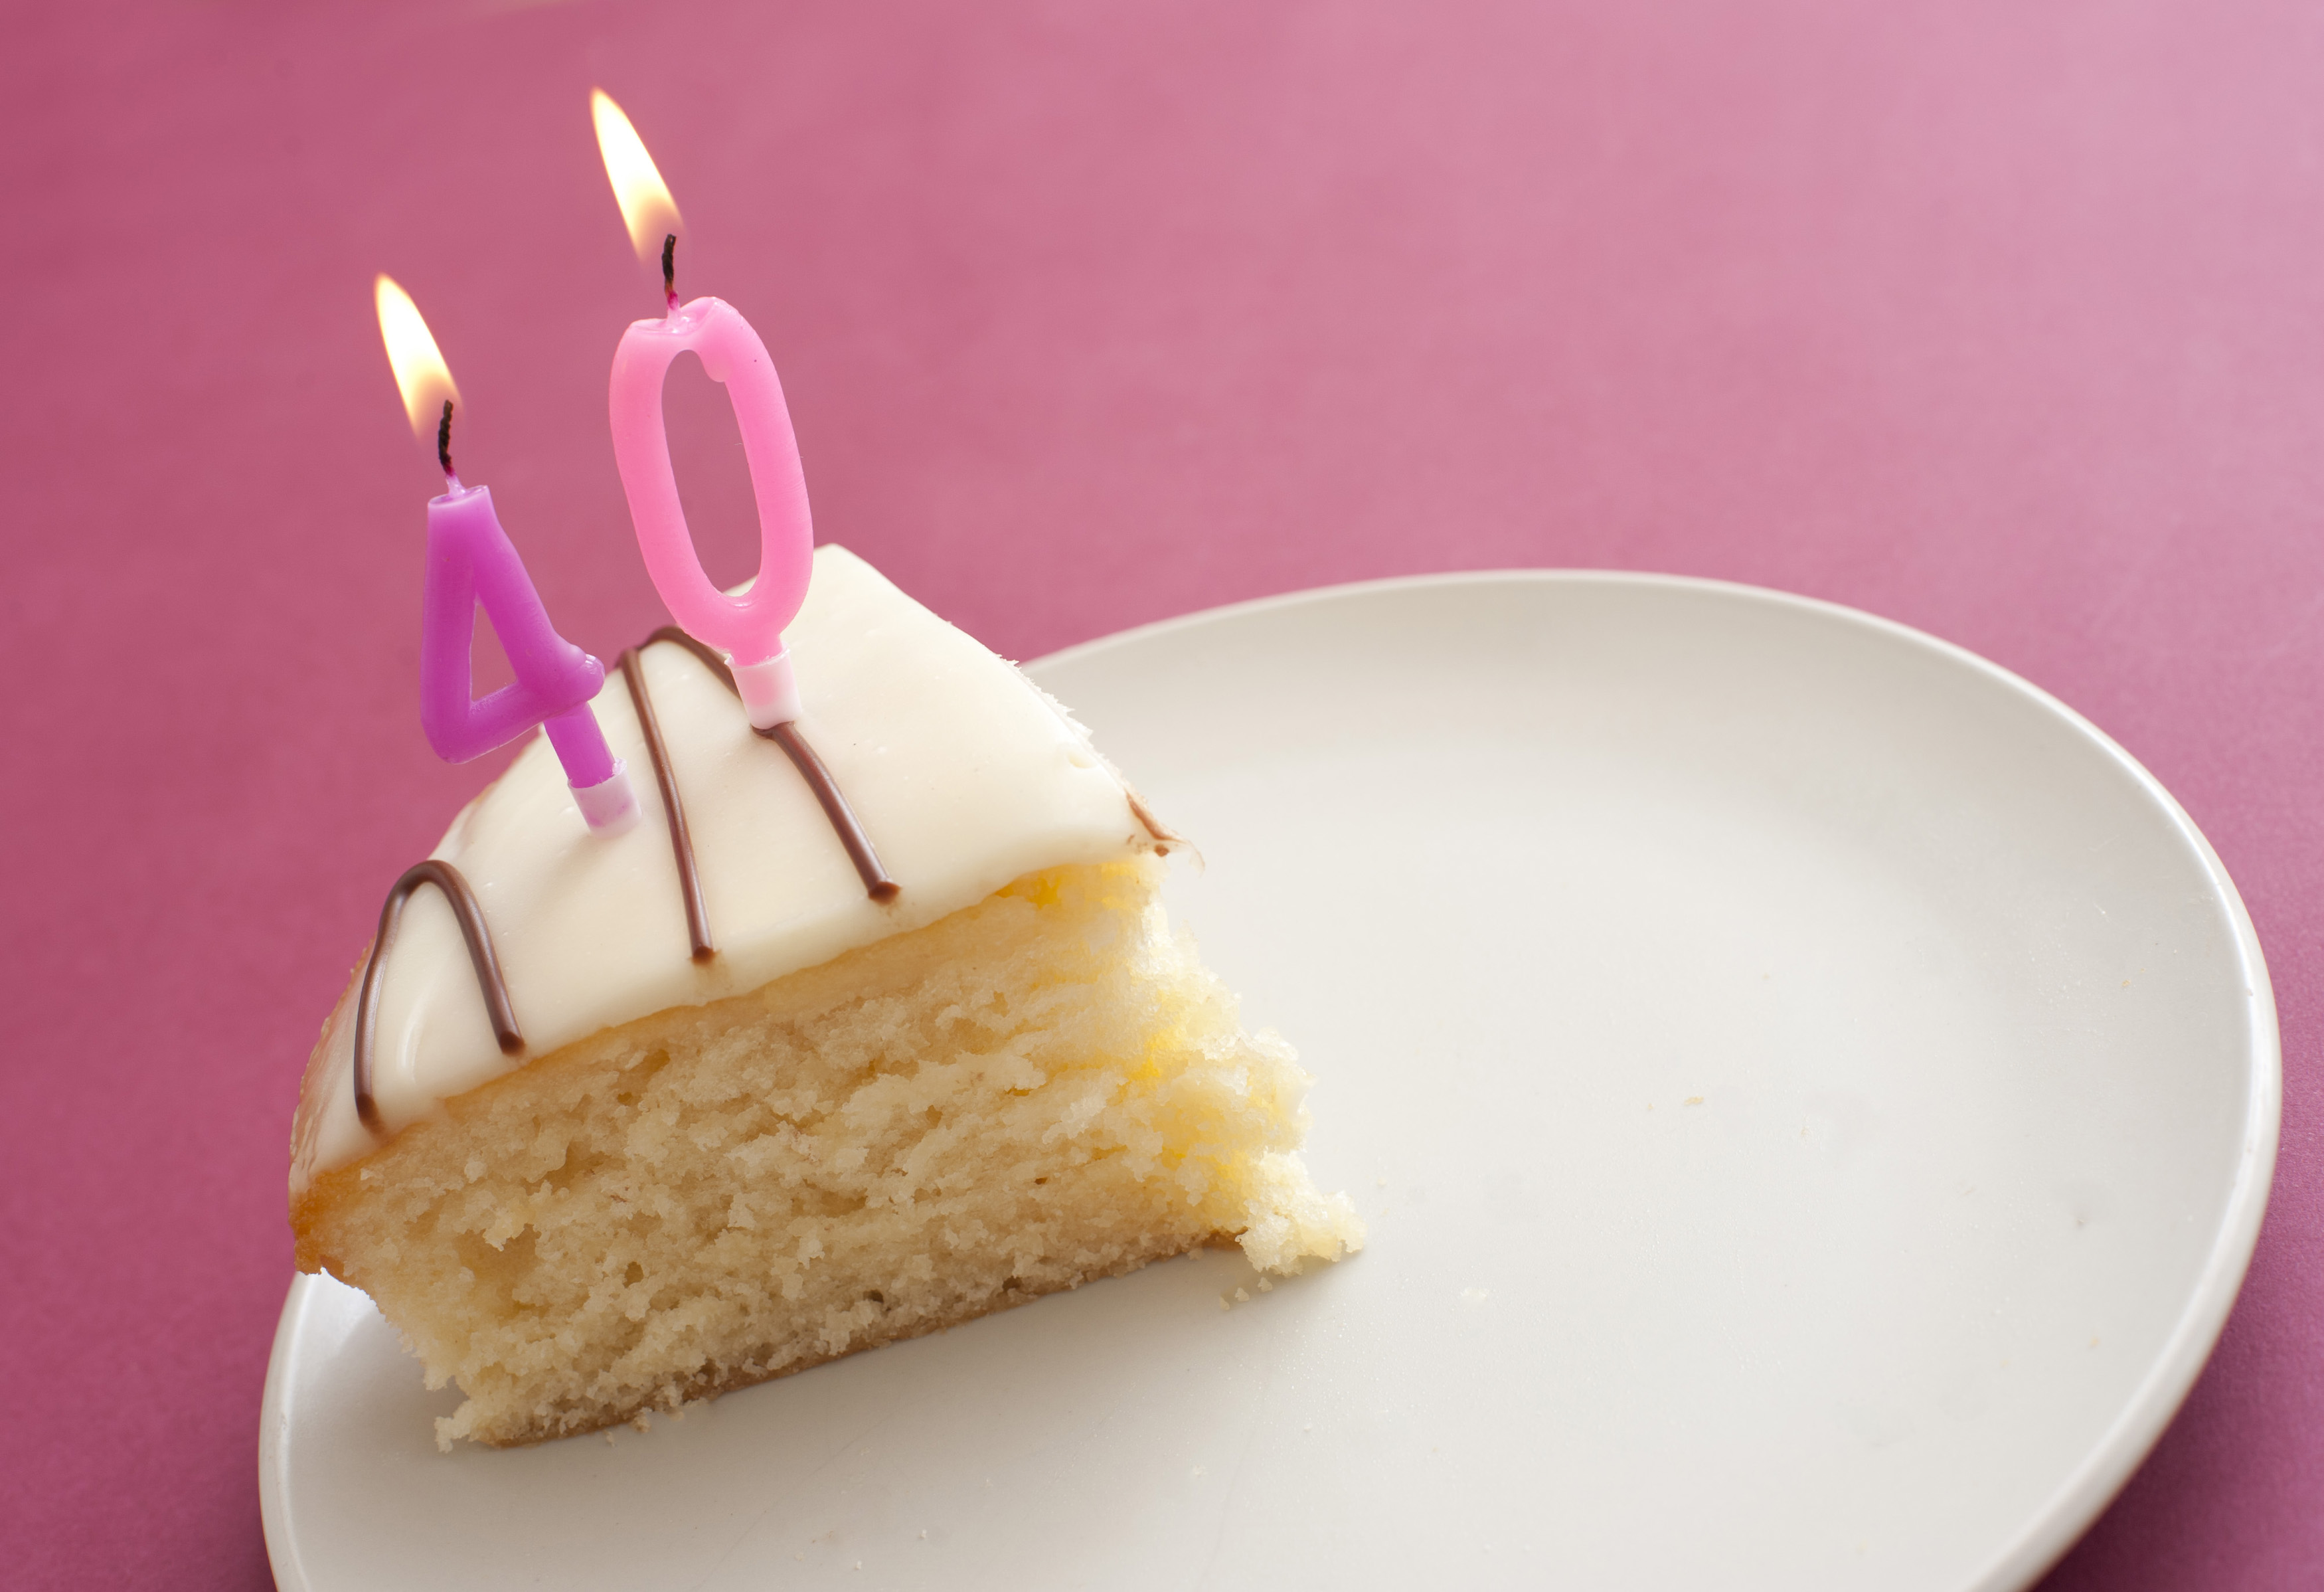 Free Stock Photo 11411 Slice Of 40th Birthday Cake With